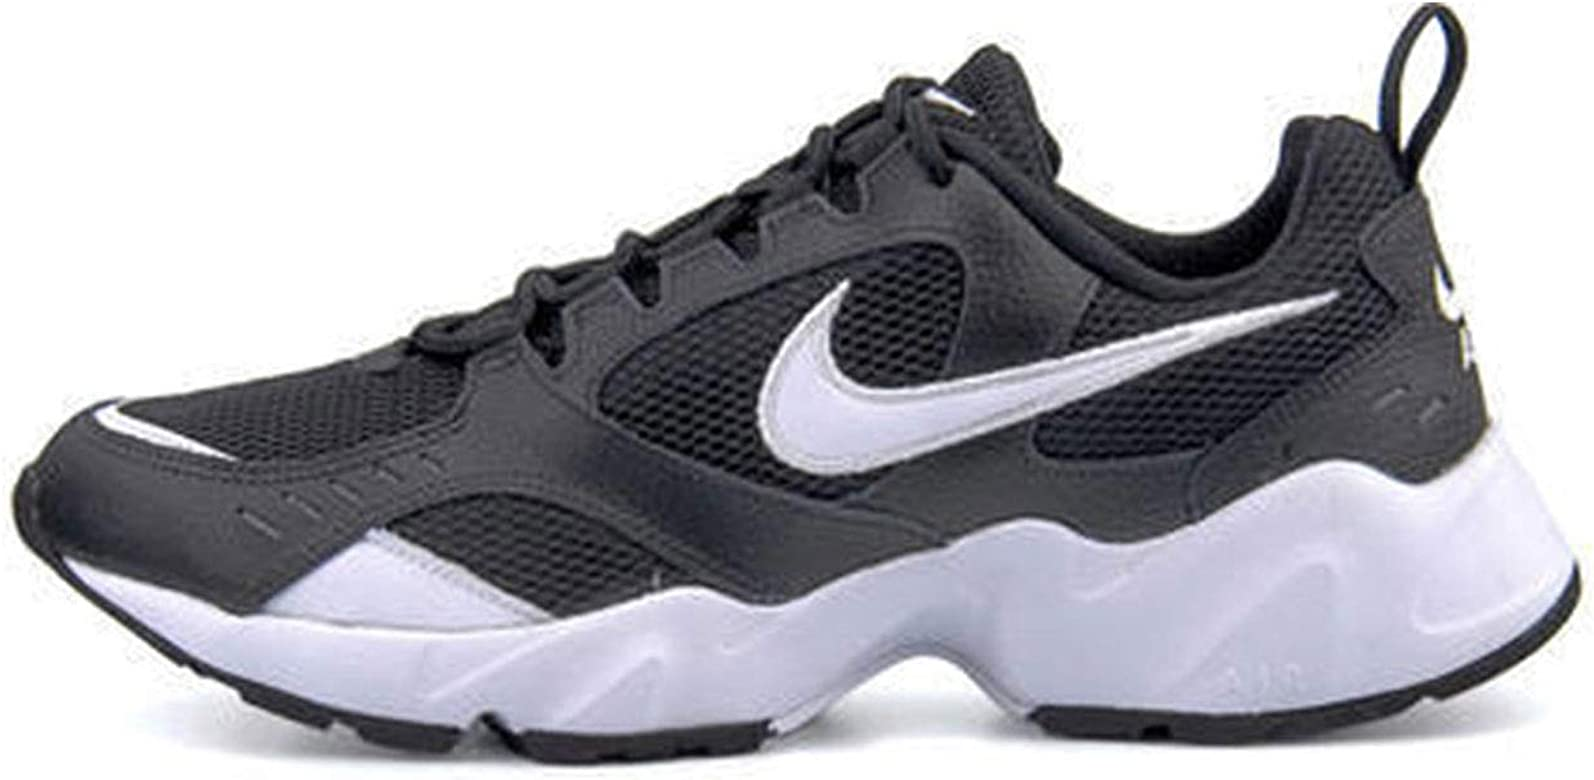 Nike Air Heights, Zapatillas para Hombre, Negro (Black/White 003), 38.5 EU: Amazon.es: Zapatos y complementos